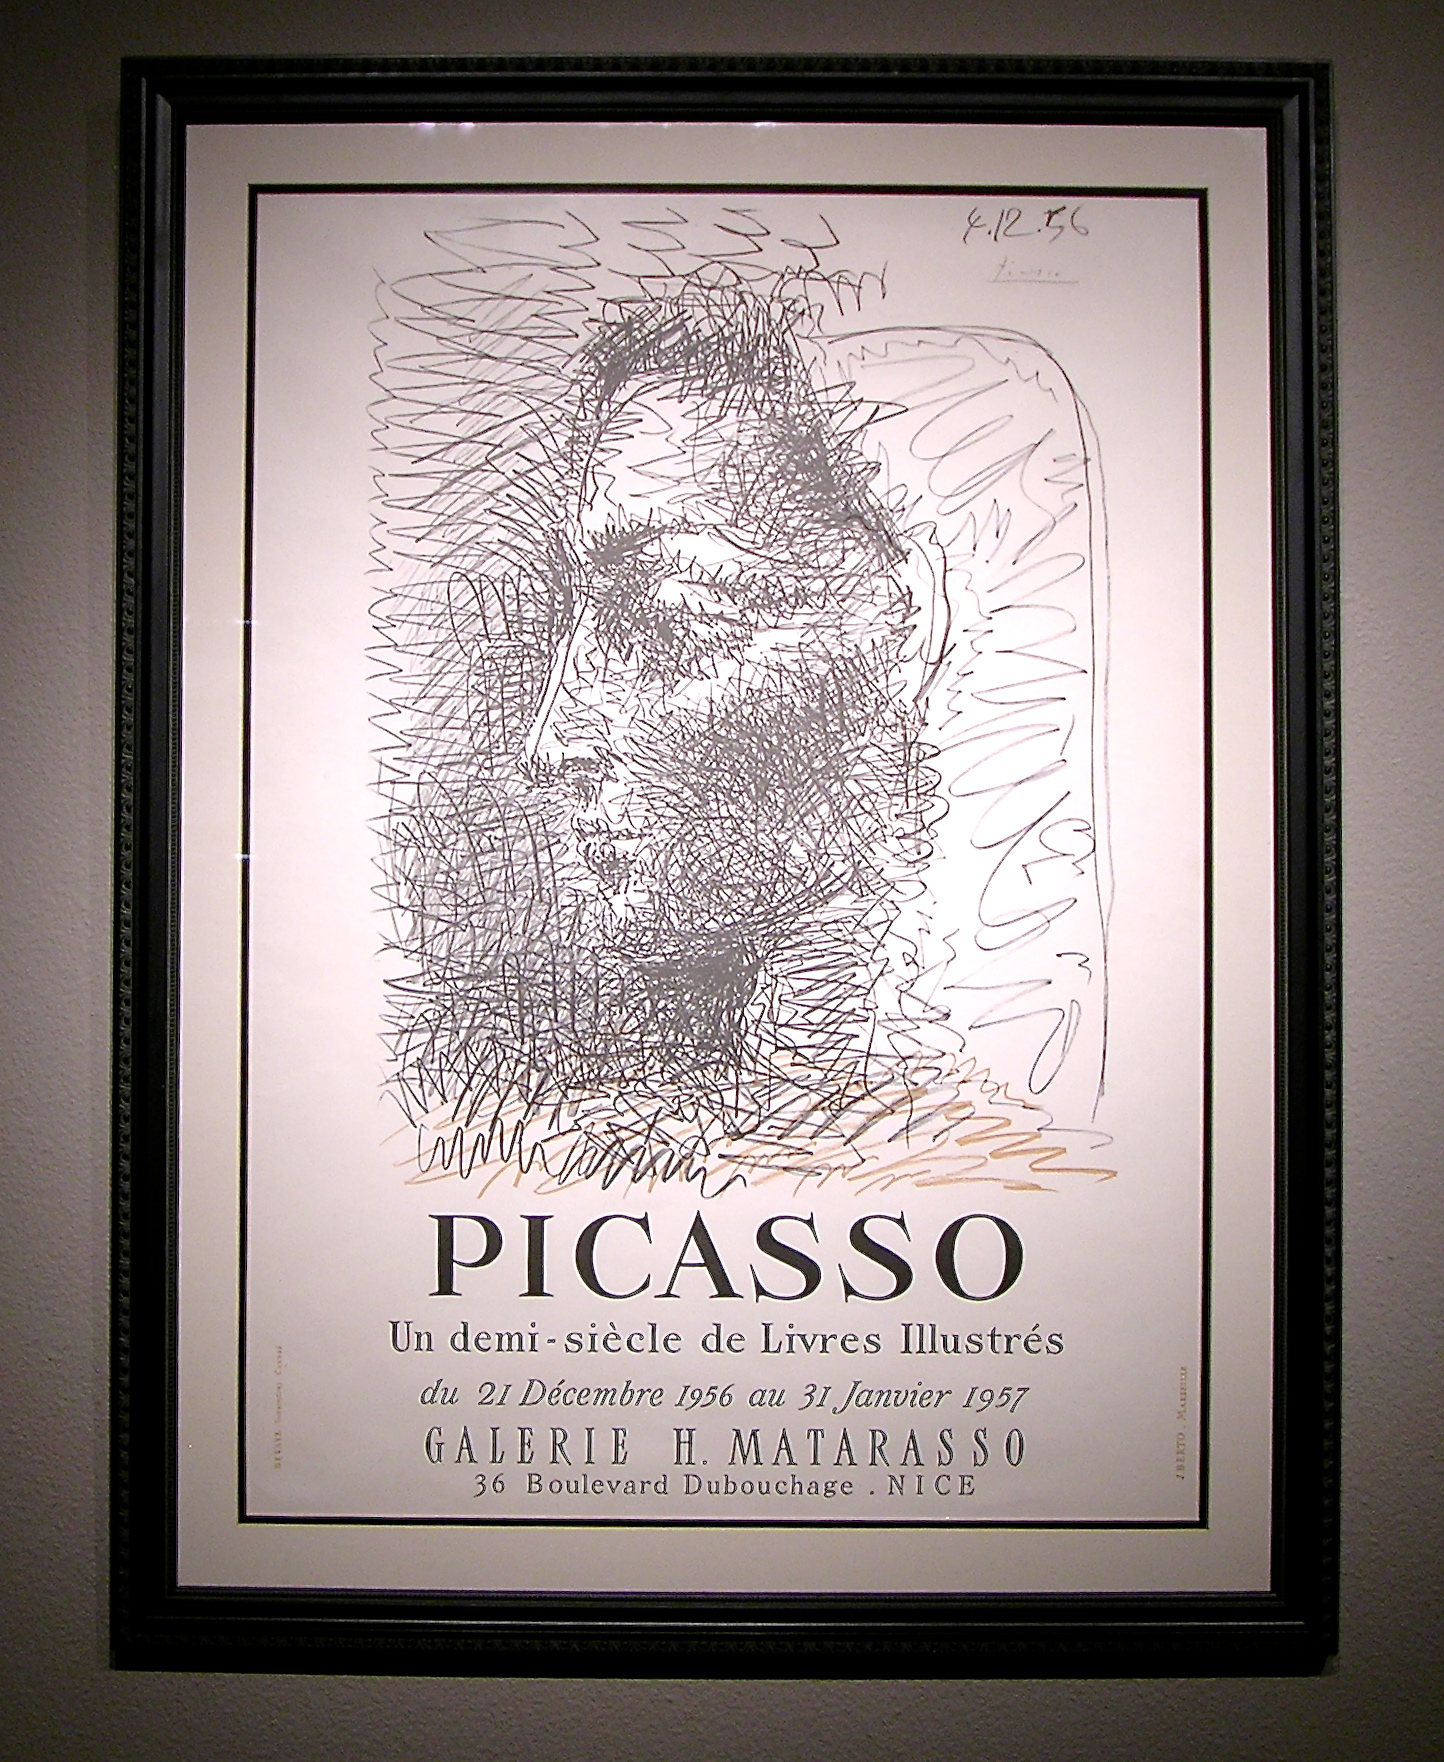 Picasso Signed Exhibition Poster 1956